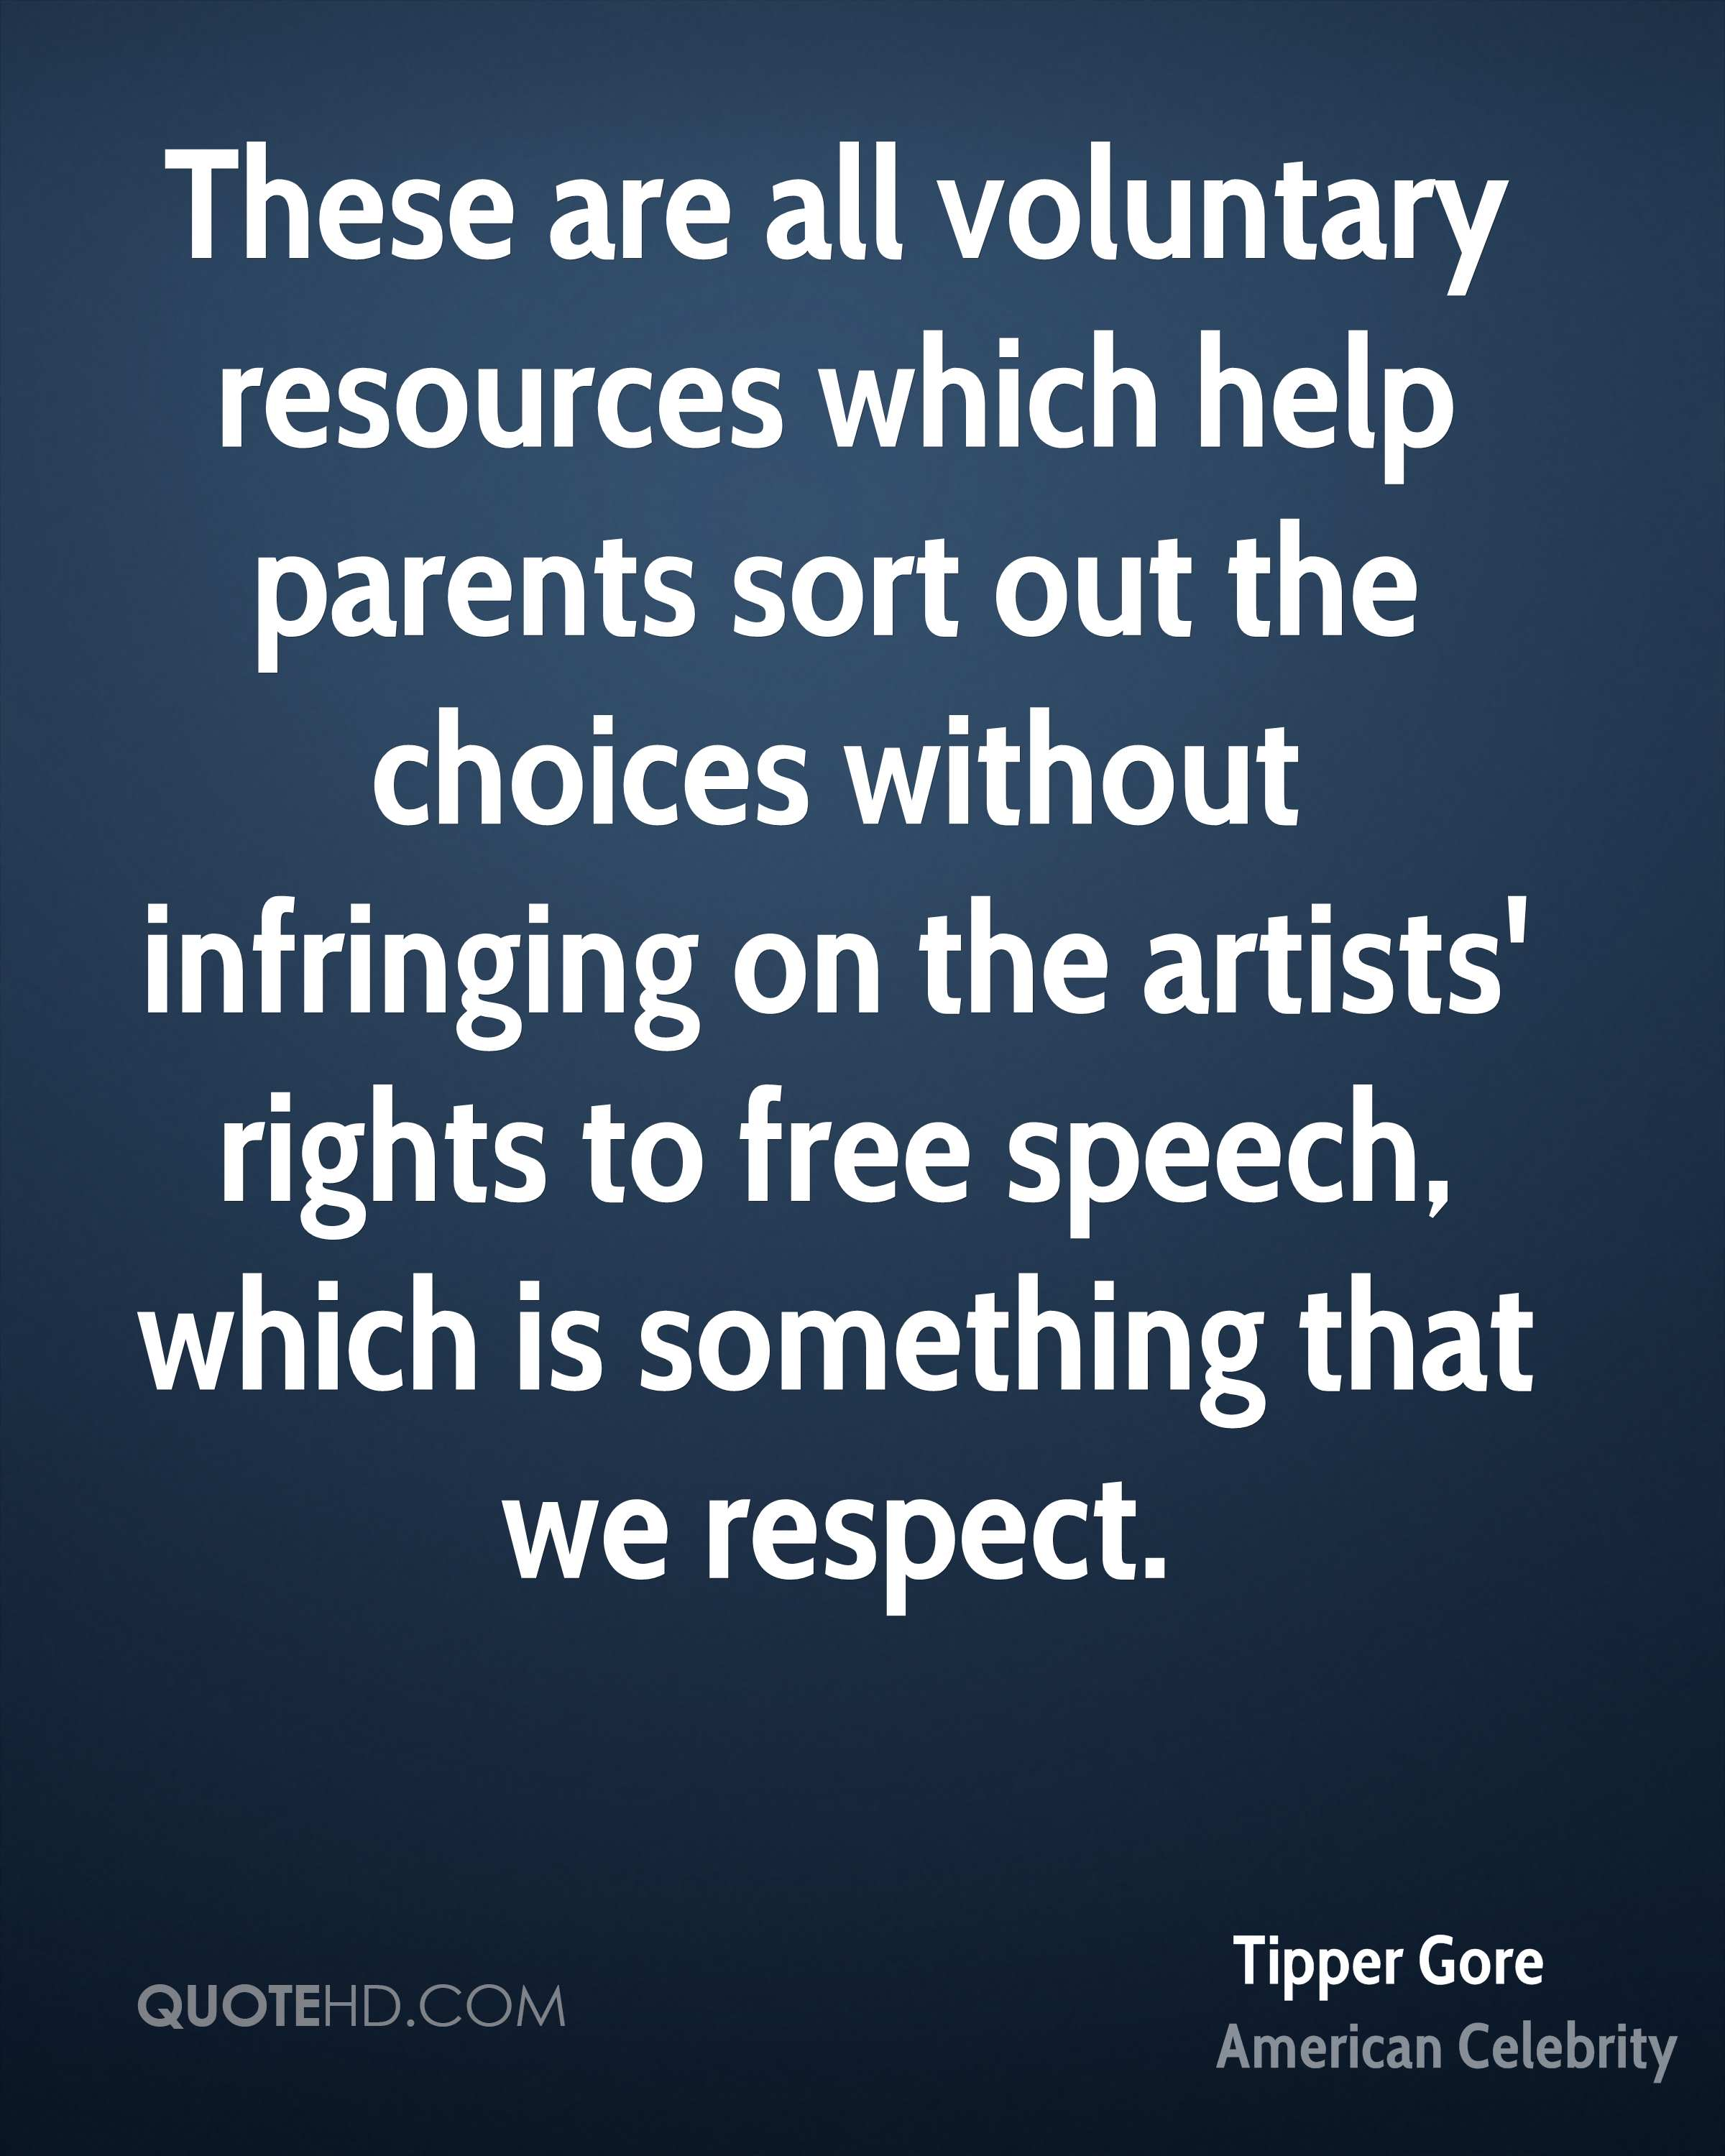 These are all voluntary resources which help parents sort out the choices without infringing on the artists' rights to free speech, which is something that we respect.